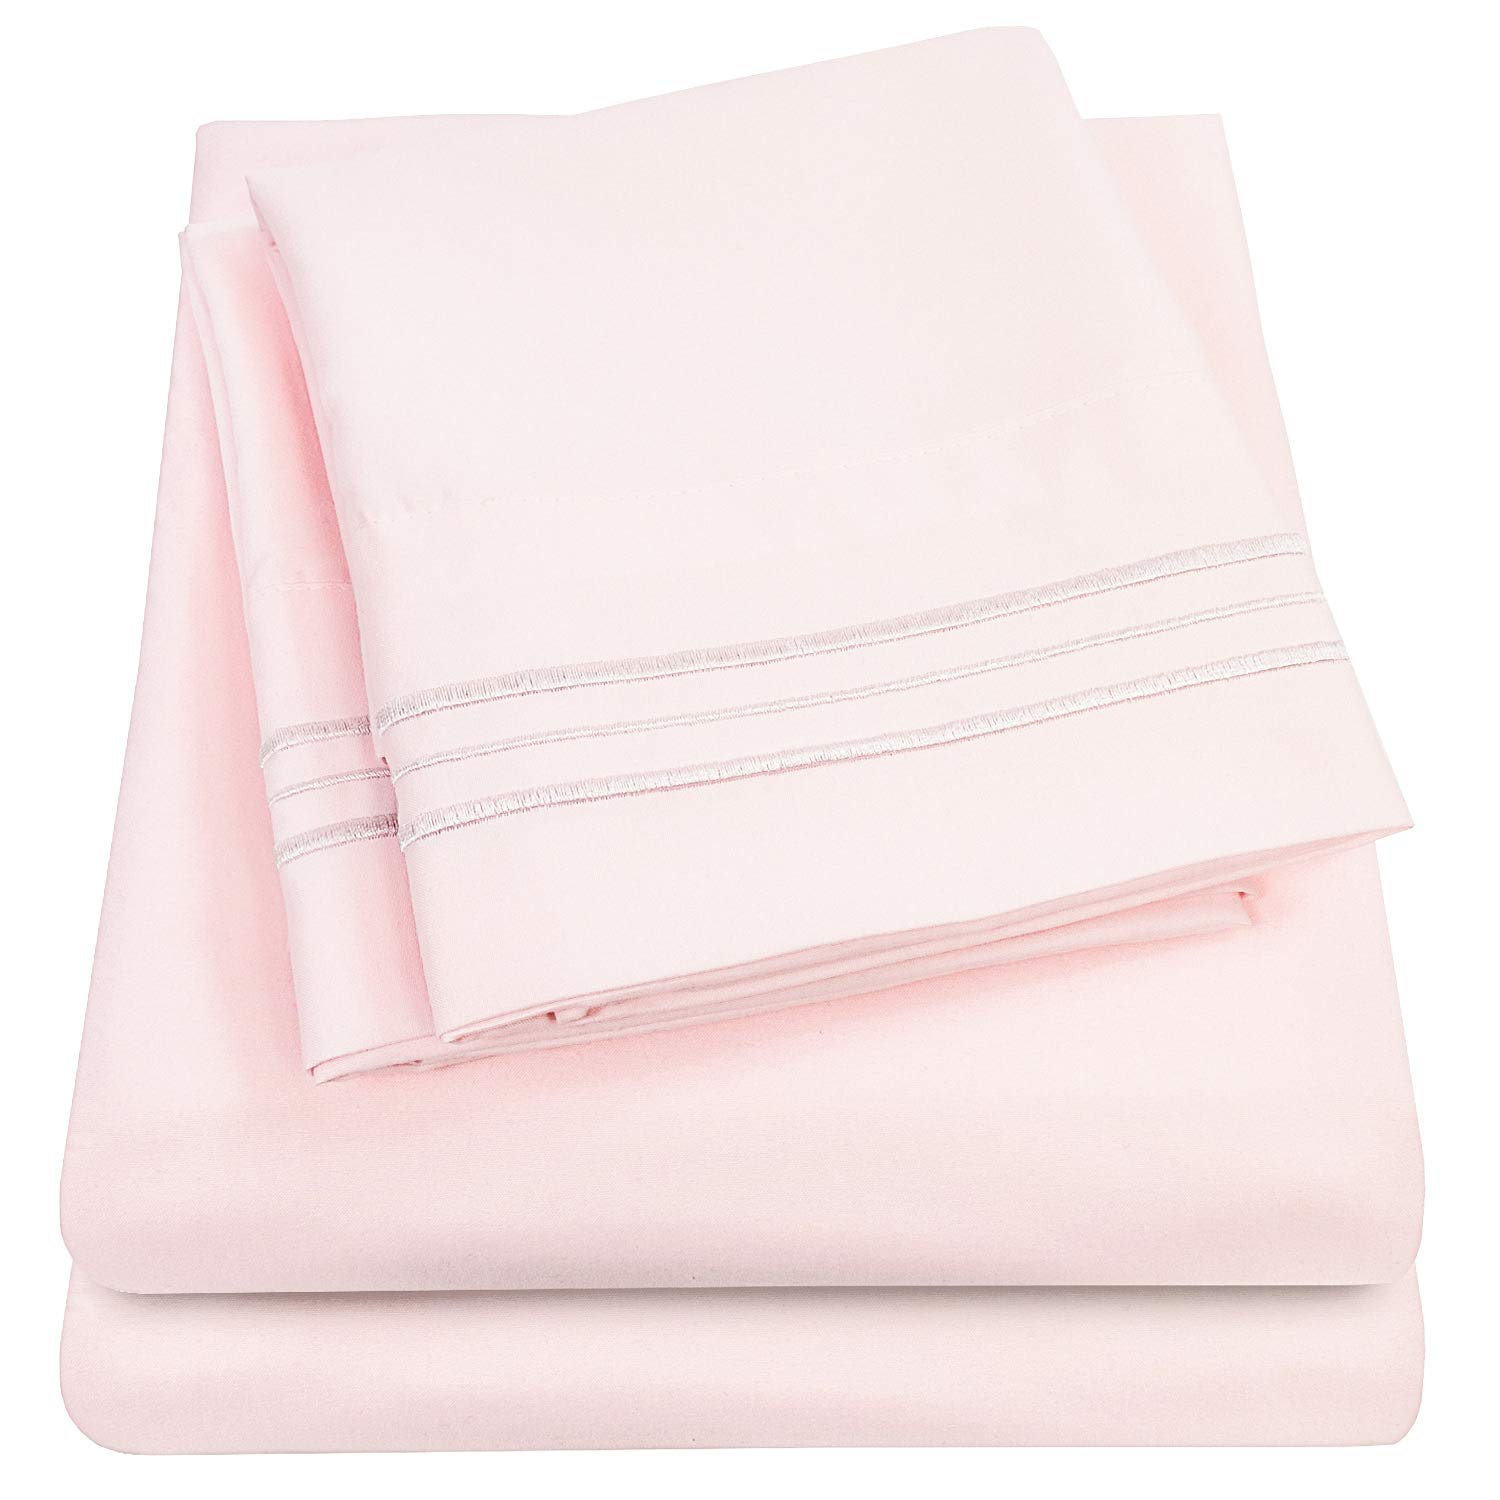 1500 Supreme Collection Extra Soft King Sheets Set, Pale Pink - Luxury Bed Sheets Set with Deep Pocket Wrinkle Free Hypoallergenic Bedding, Over 40 Colors, King Size, Pale Pink